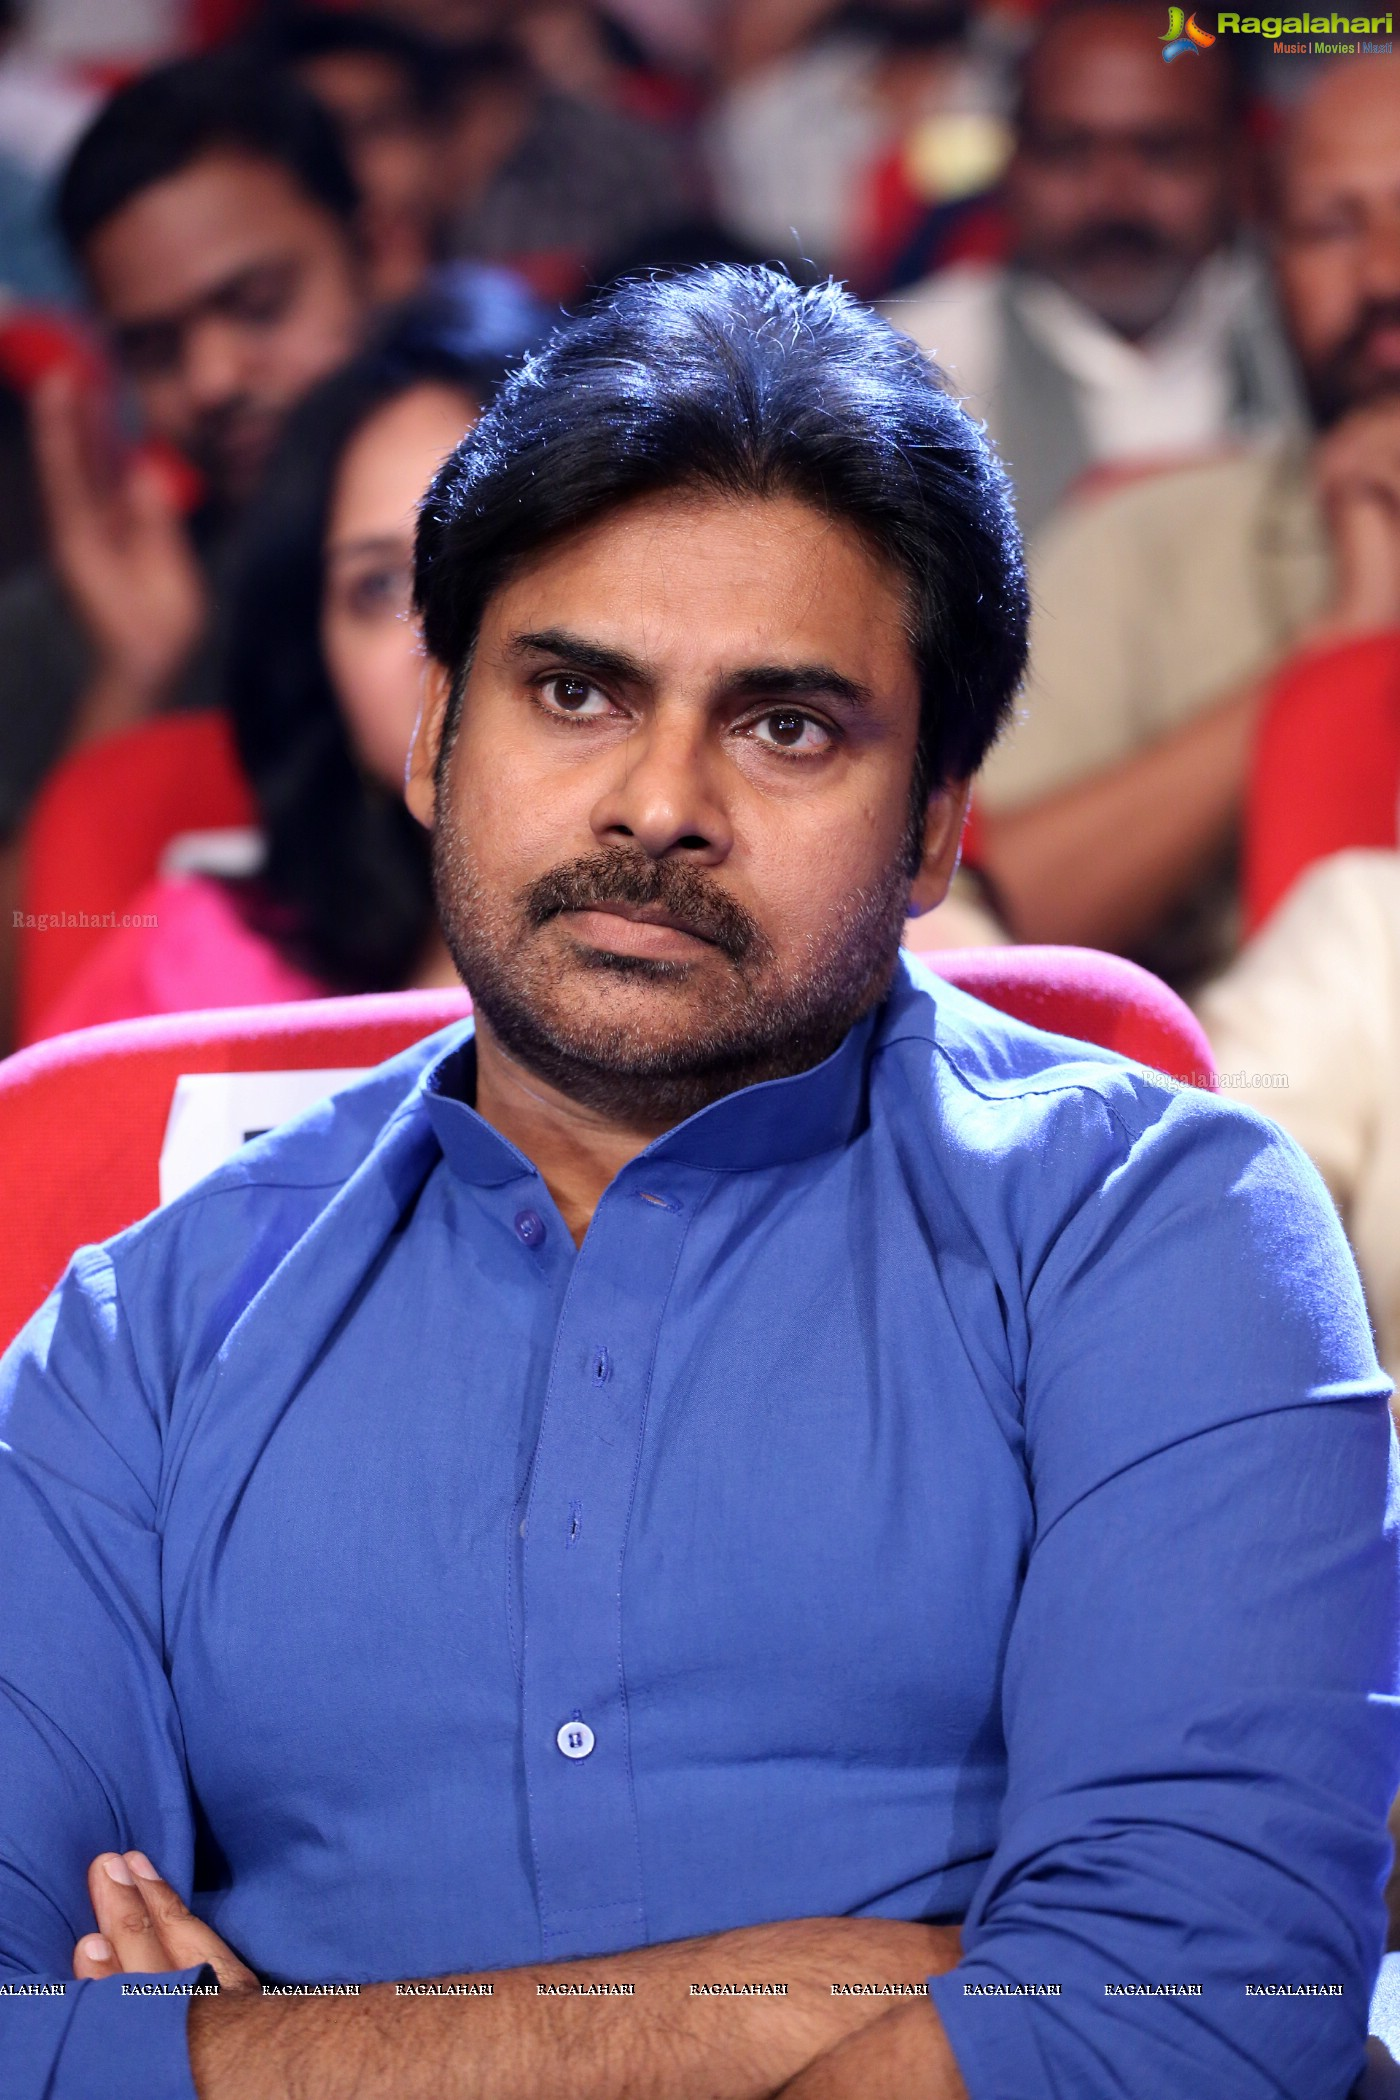 pawan kalyan (posters) image 17 | tollywood actor gallery,images